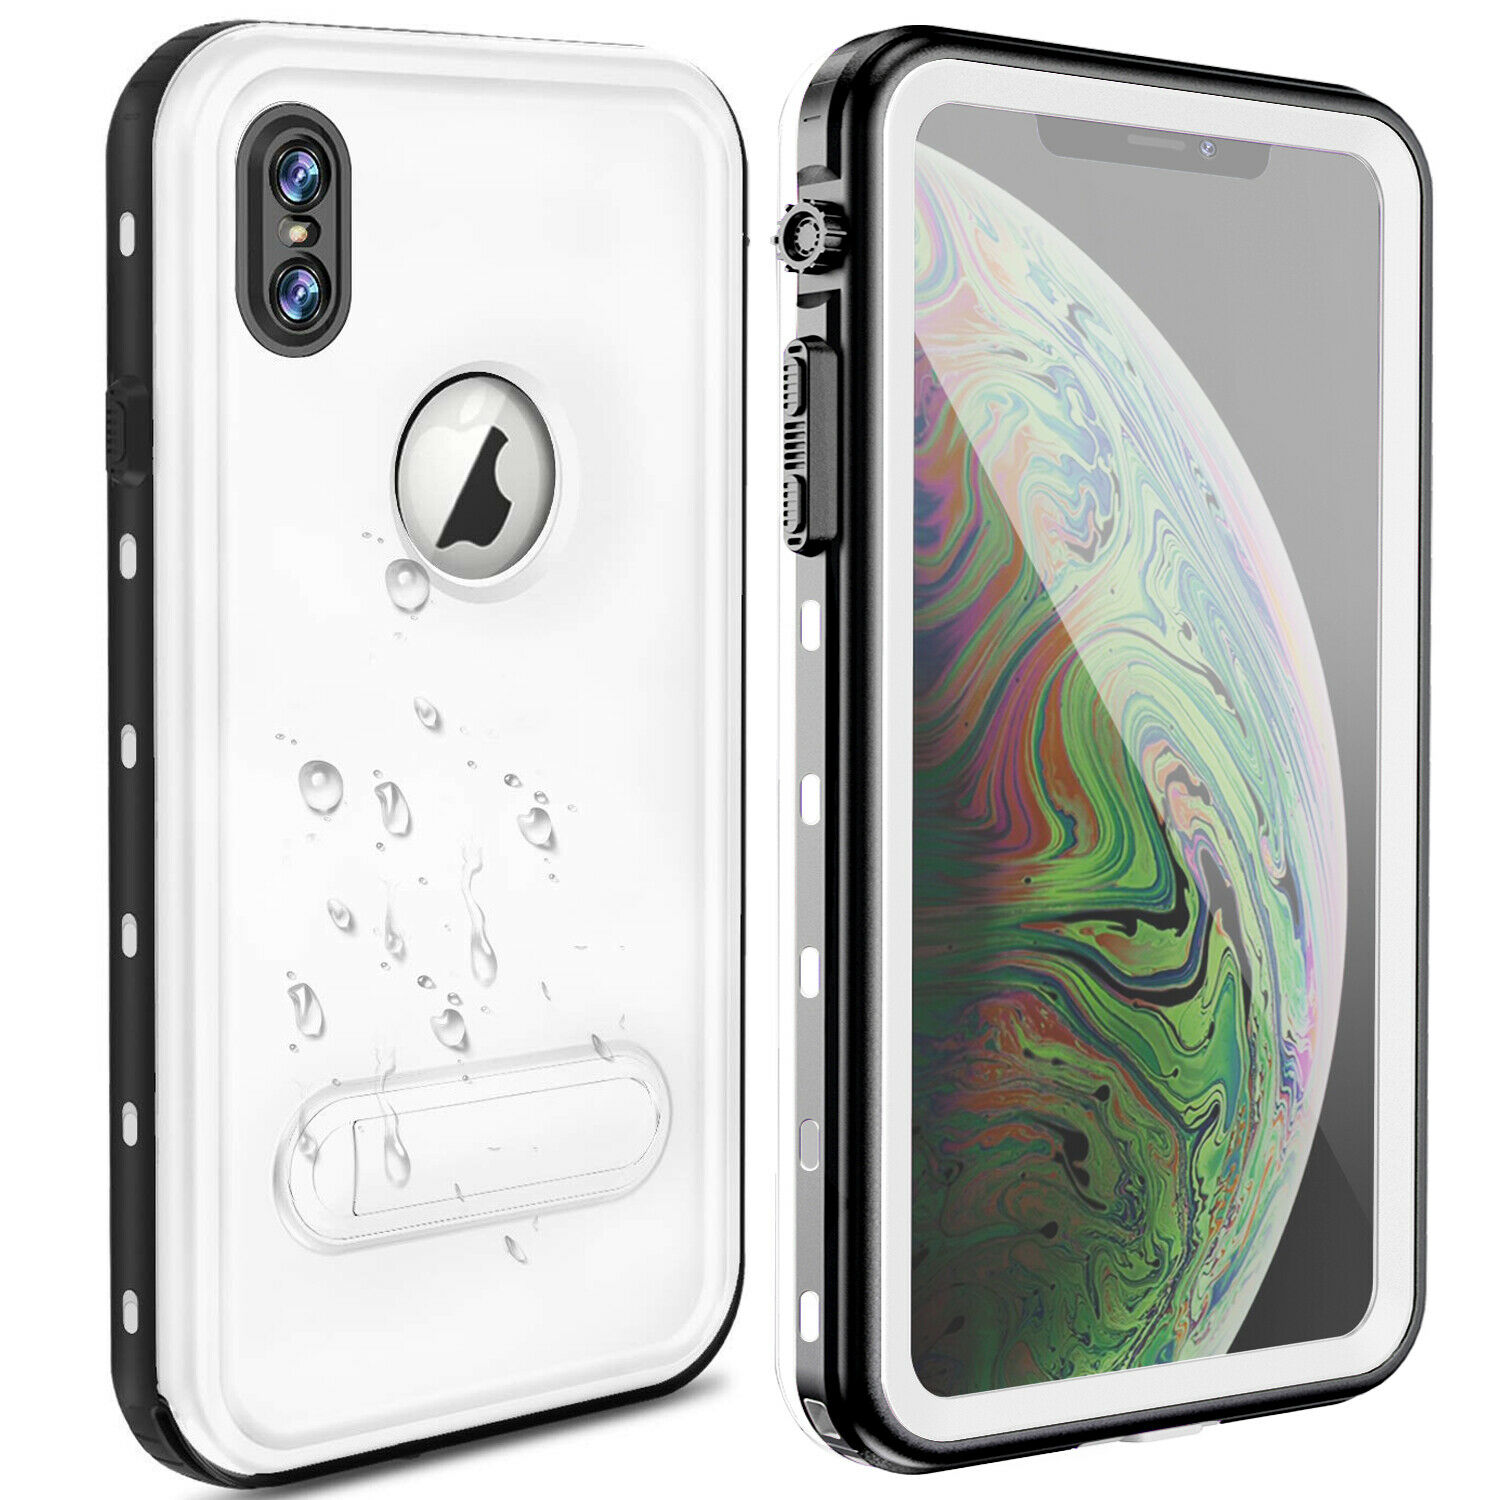 For iPhone X/XS Waterproof Case. Exgreem Built-in Screen Full-Body Protector with Floating Strap IP68 Waterproof Case for iPhone X/XS--White ...